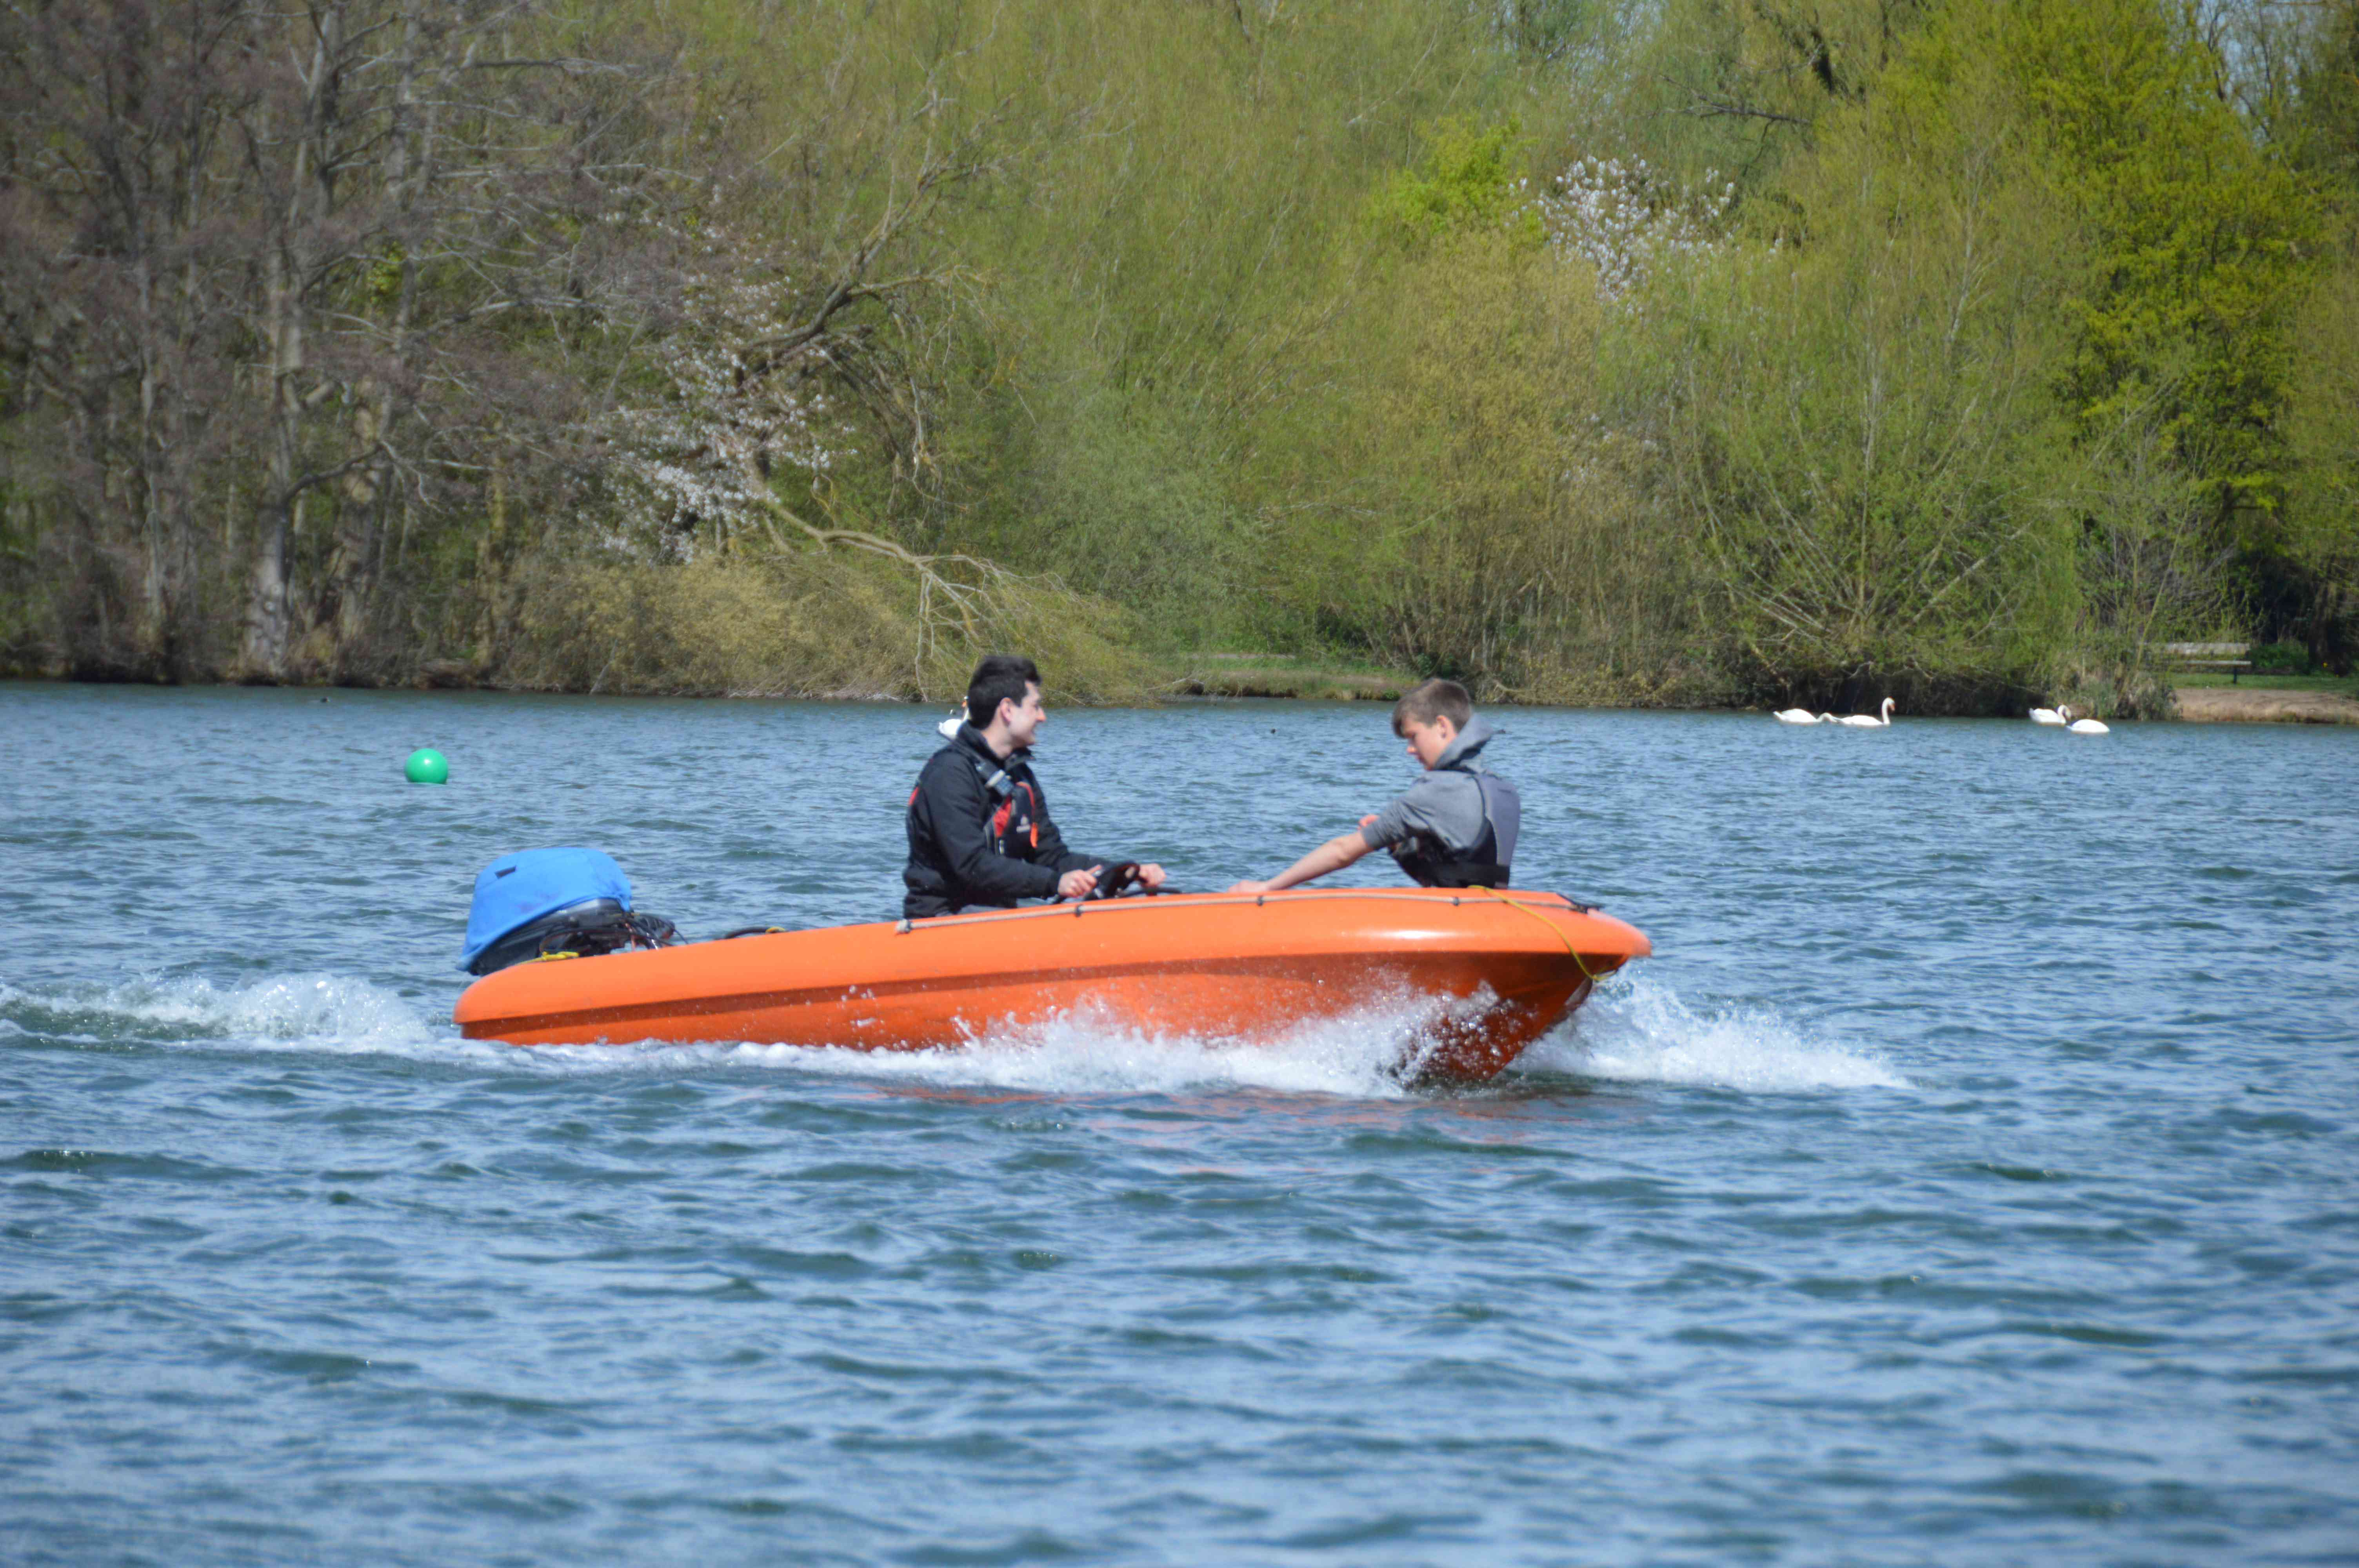 RYA Safety Boat